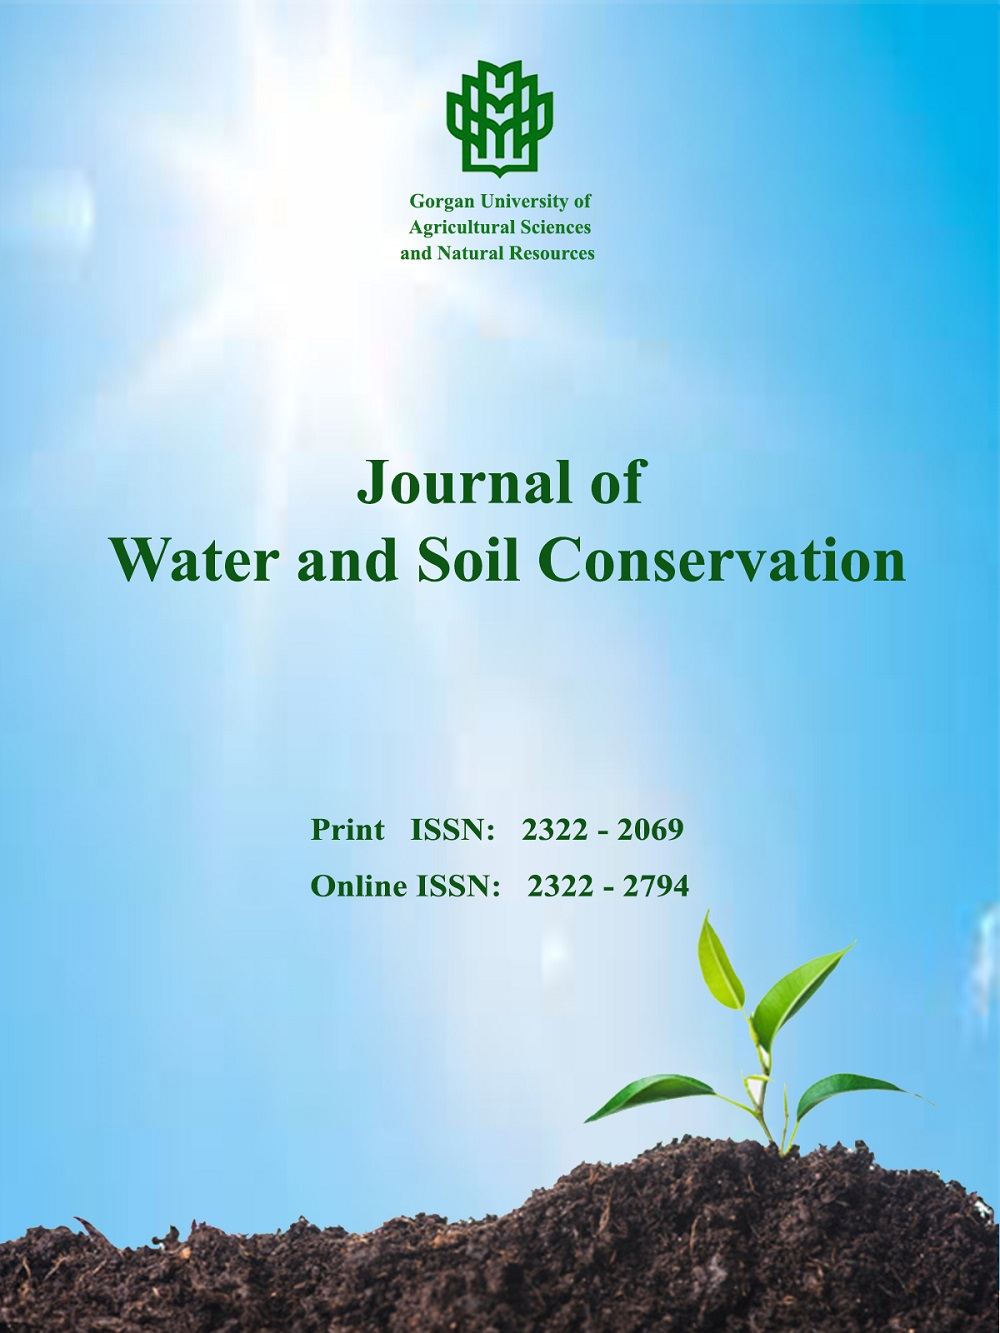 Journal of Water and Soil Conservation